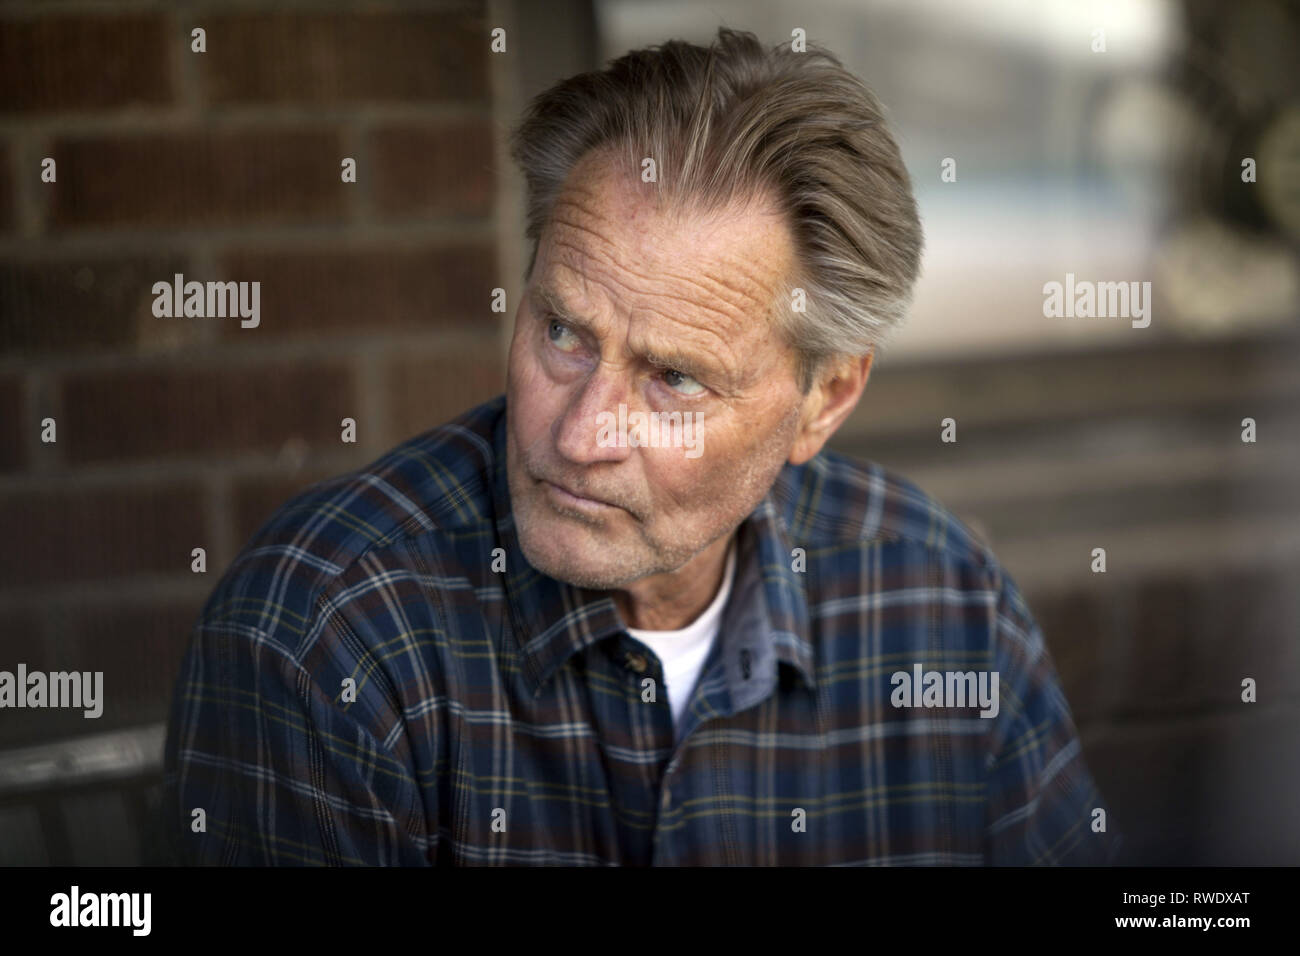 SAM SHEPARD, OUT OF THE FURNACE, 2013 - Stock Image